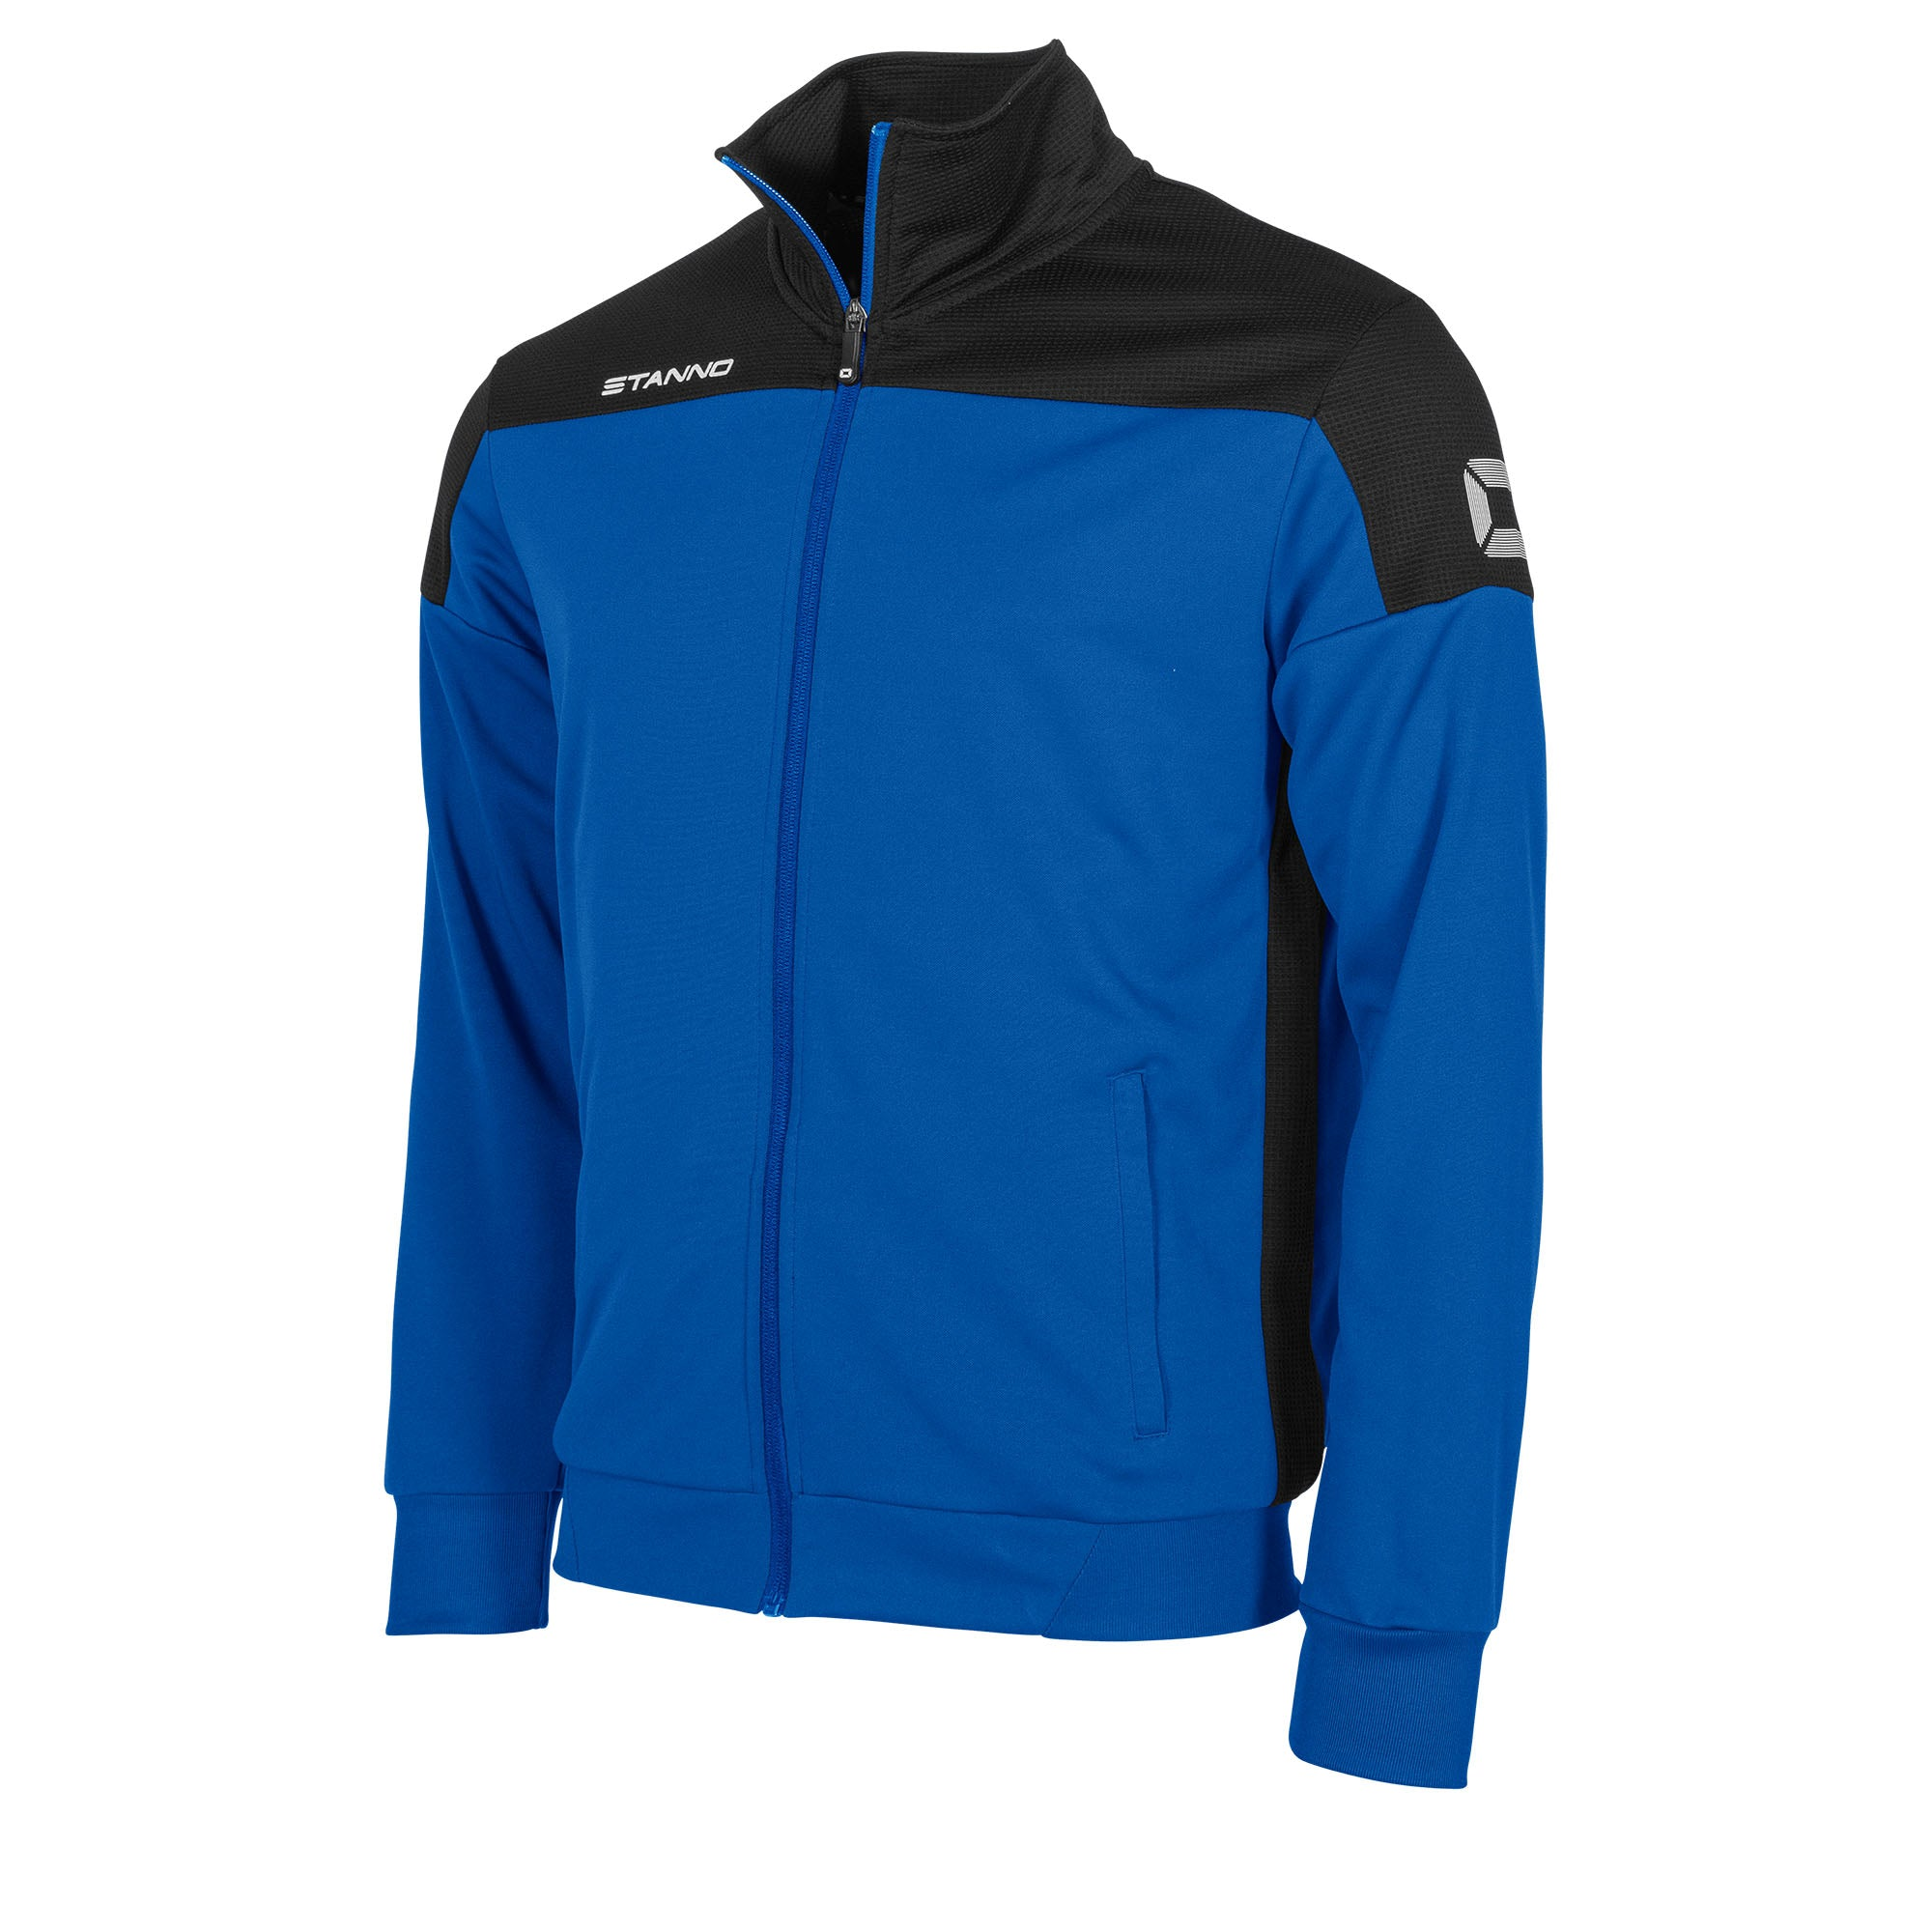 Stanno Pride TTS Jacket full zip in royal blue with black contrast shoulders